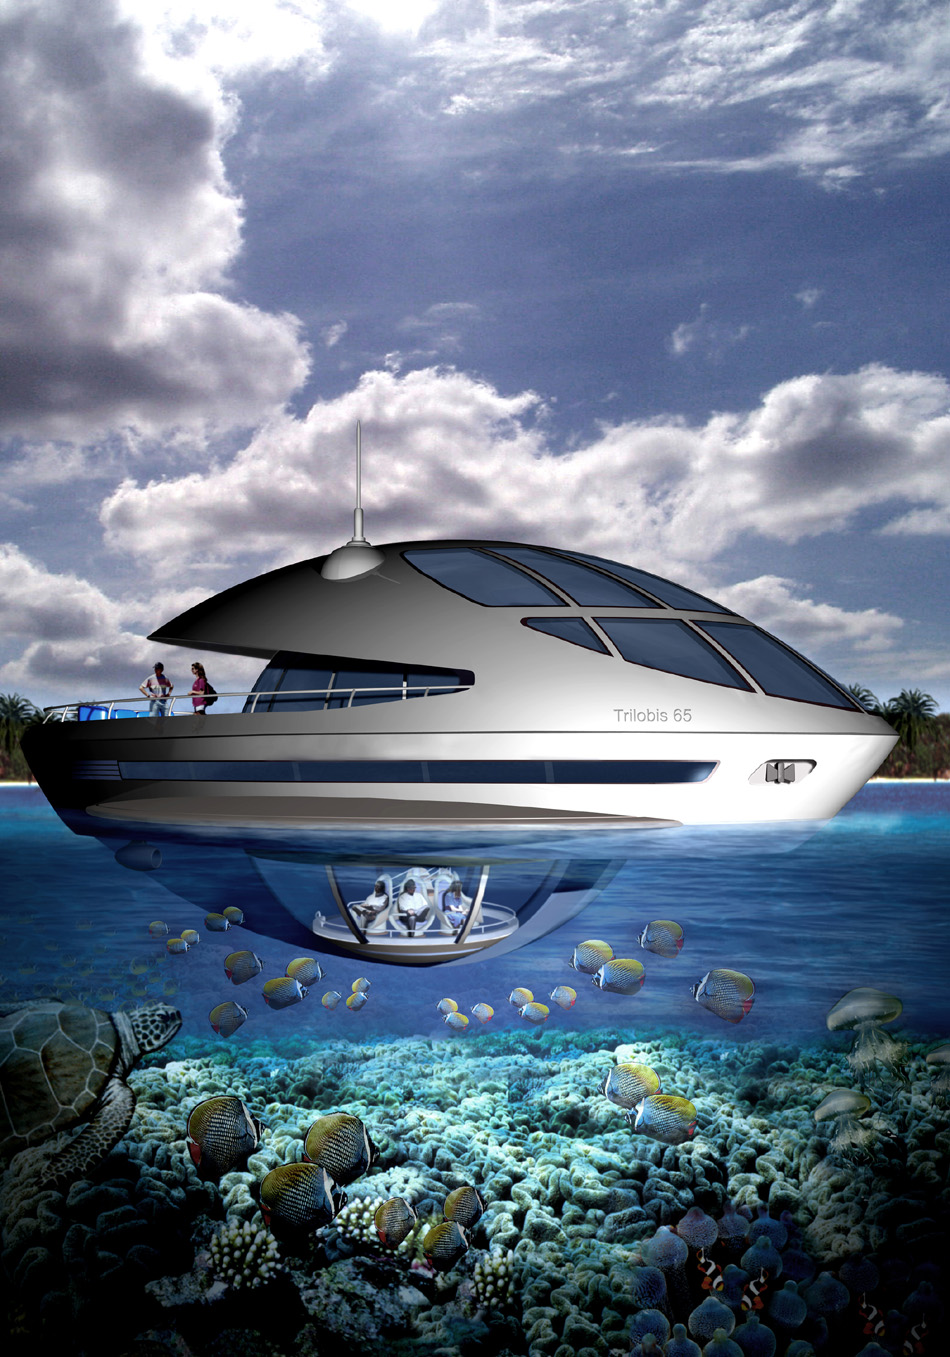 Eco-Yacht & Houseboat | Trilobis 65 by Giancarlo Zema